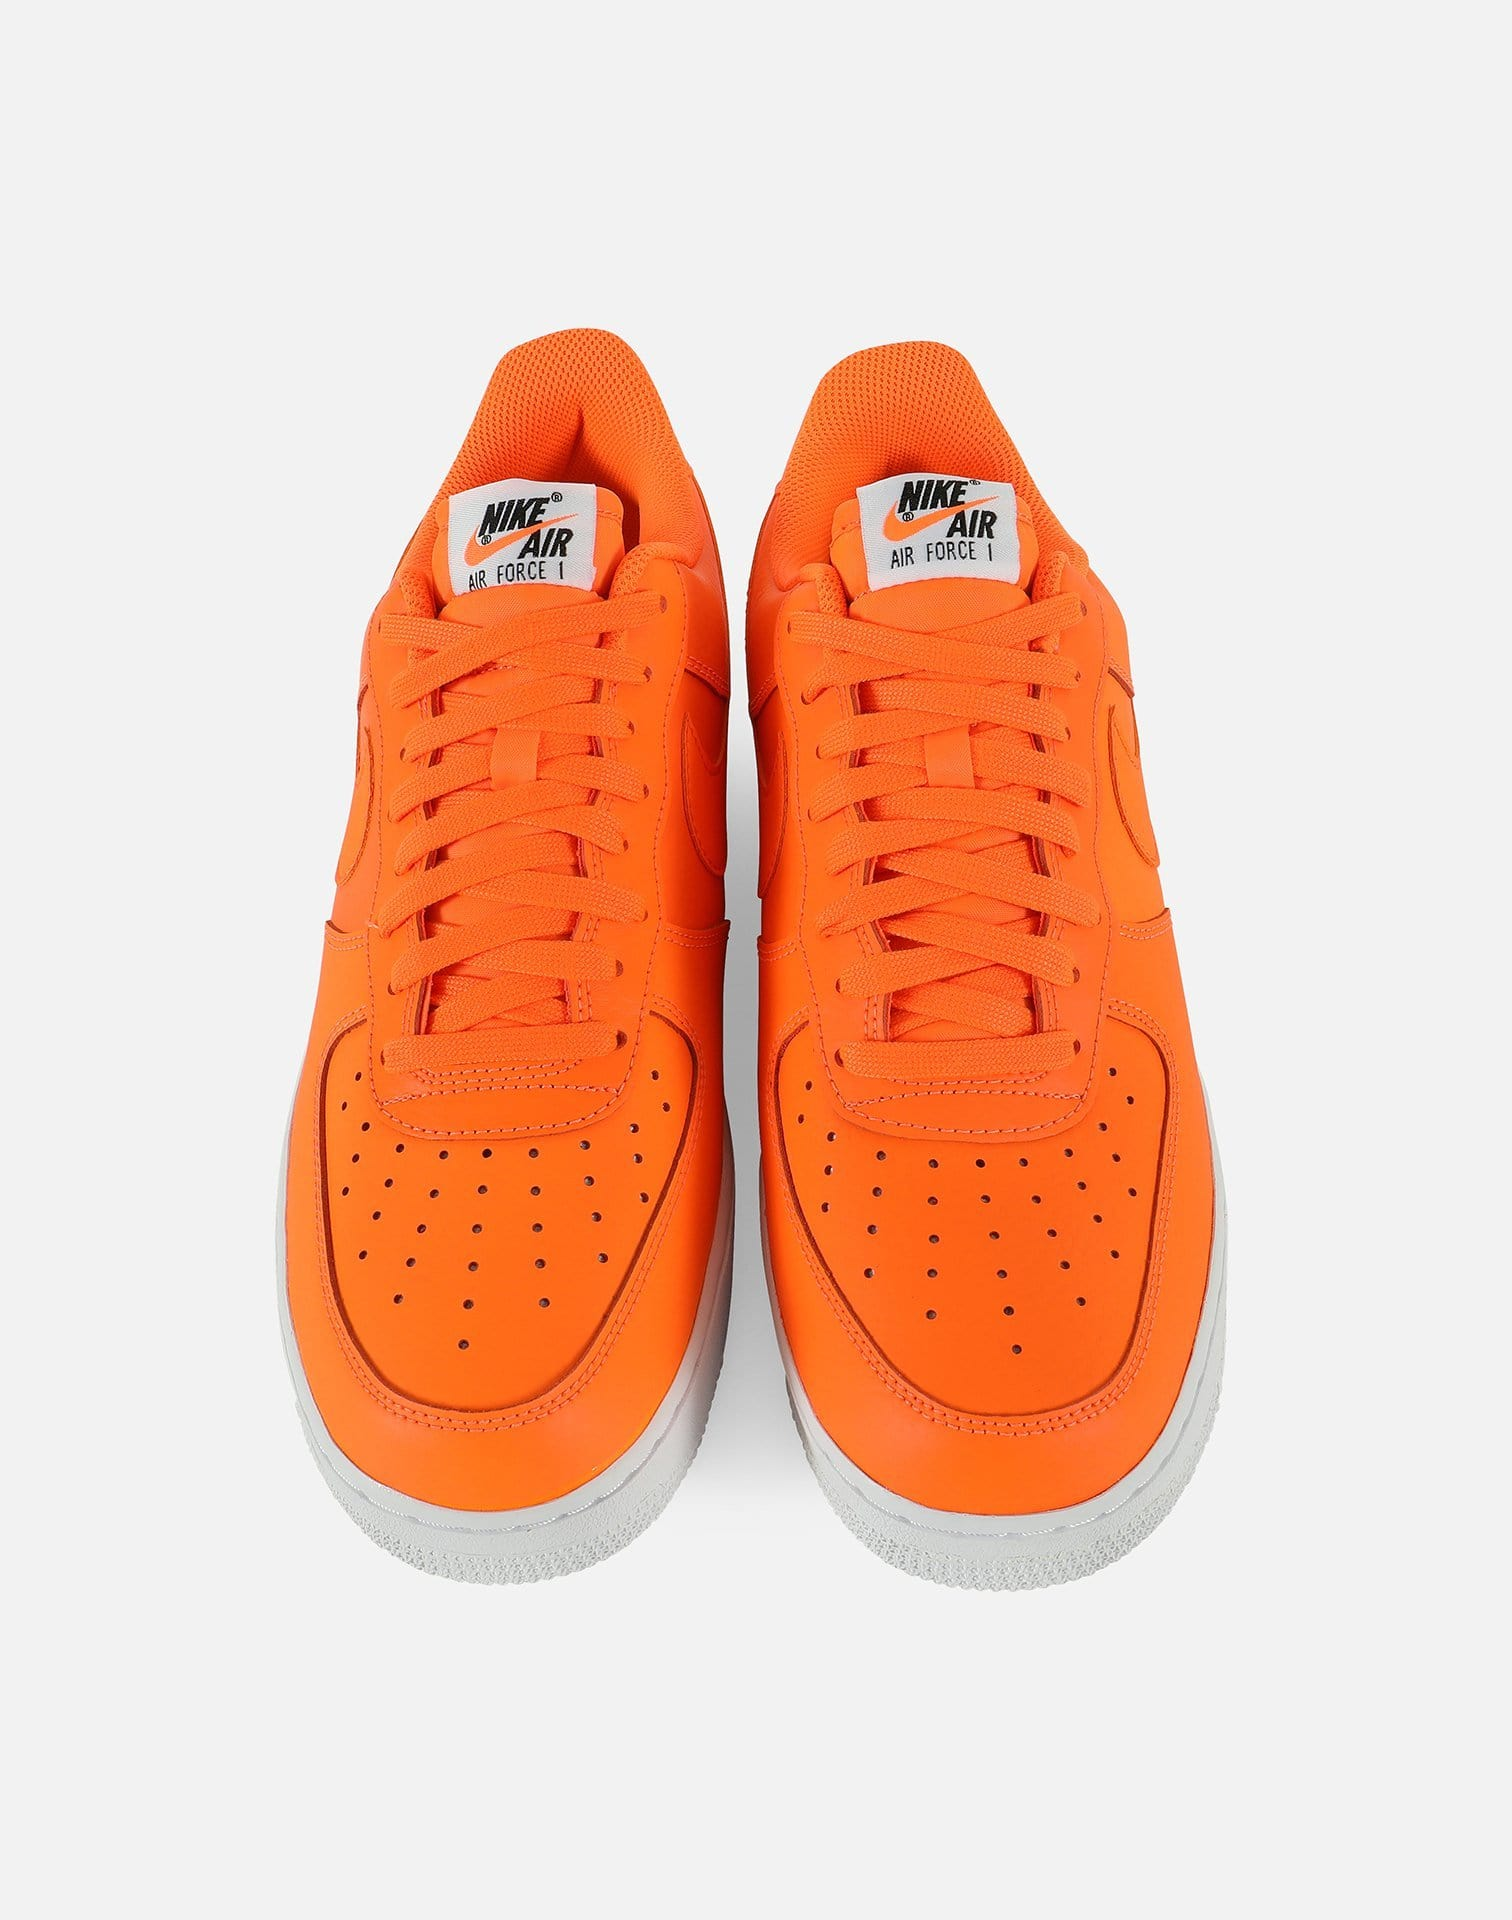 Nike Men's Air Force 1 '07 LV8 'JDI'